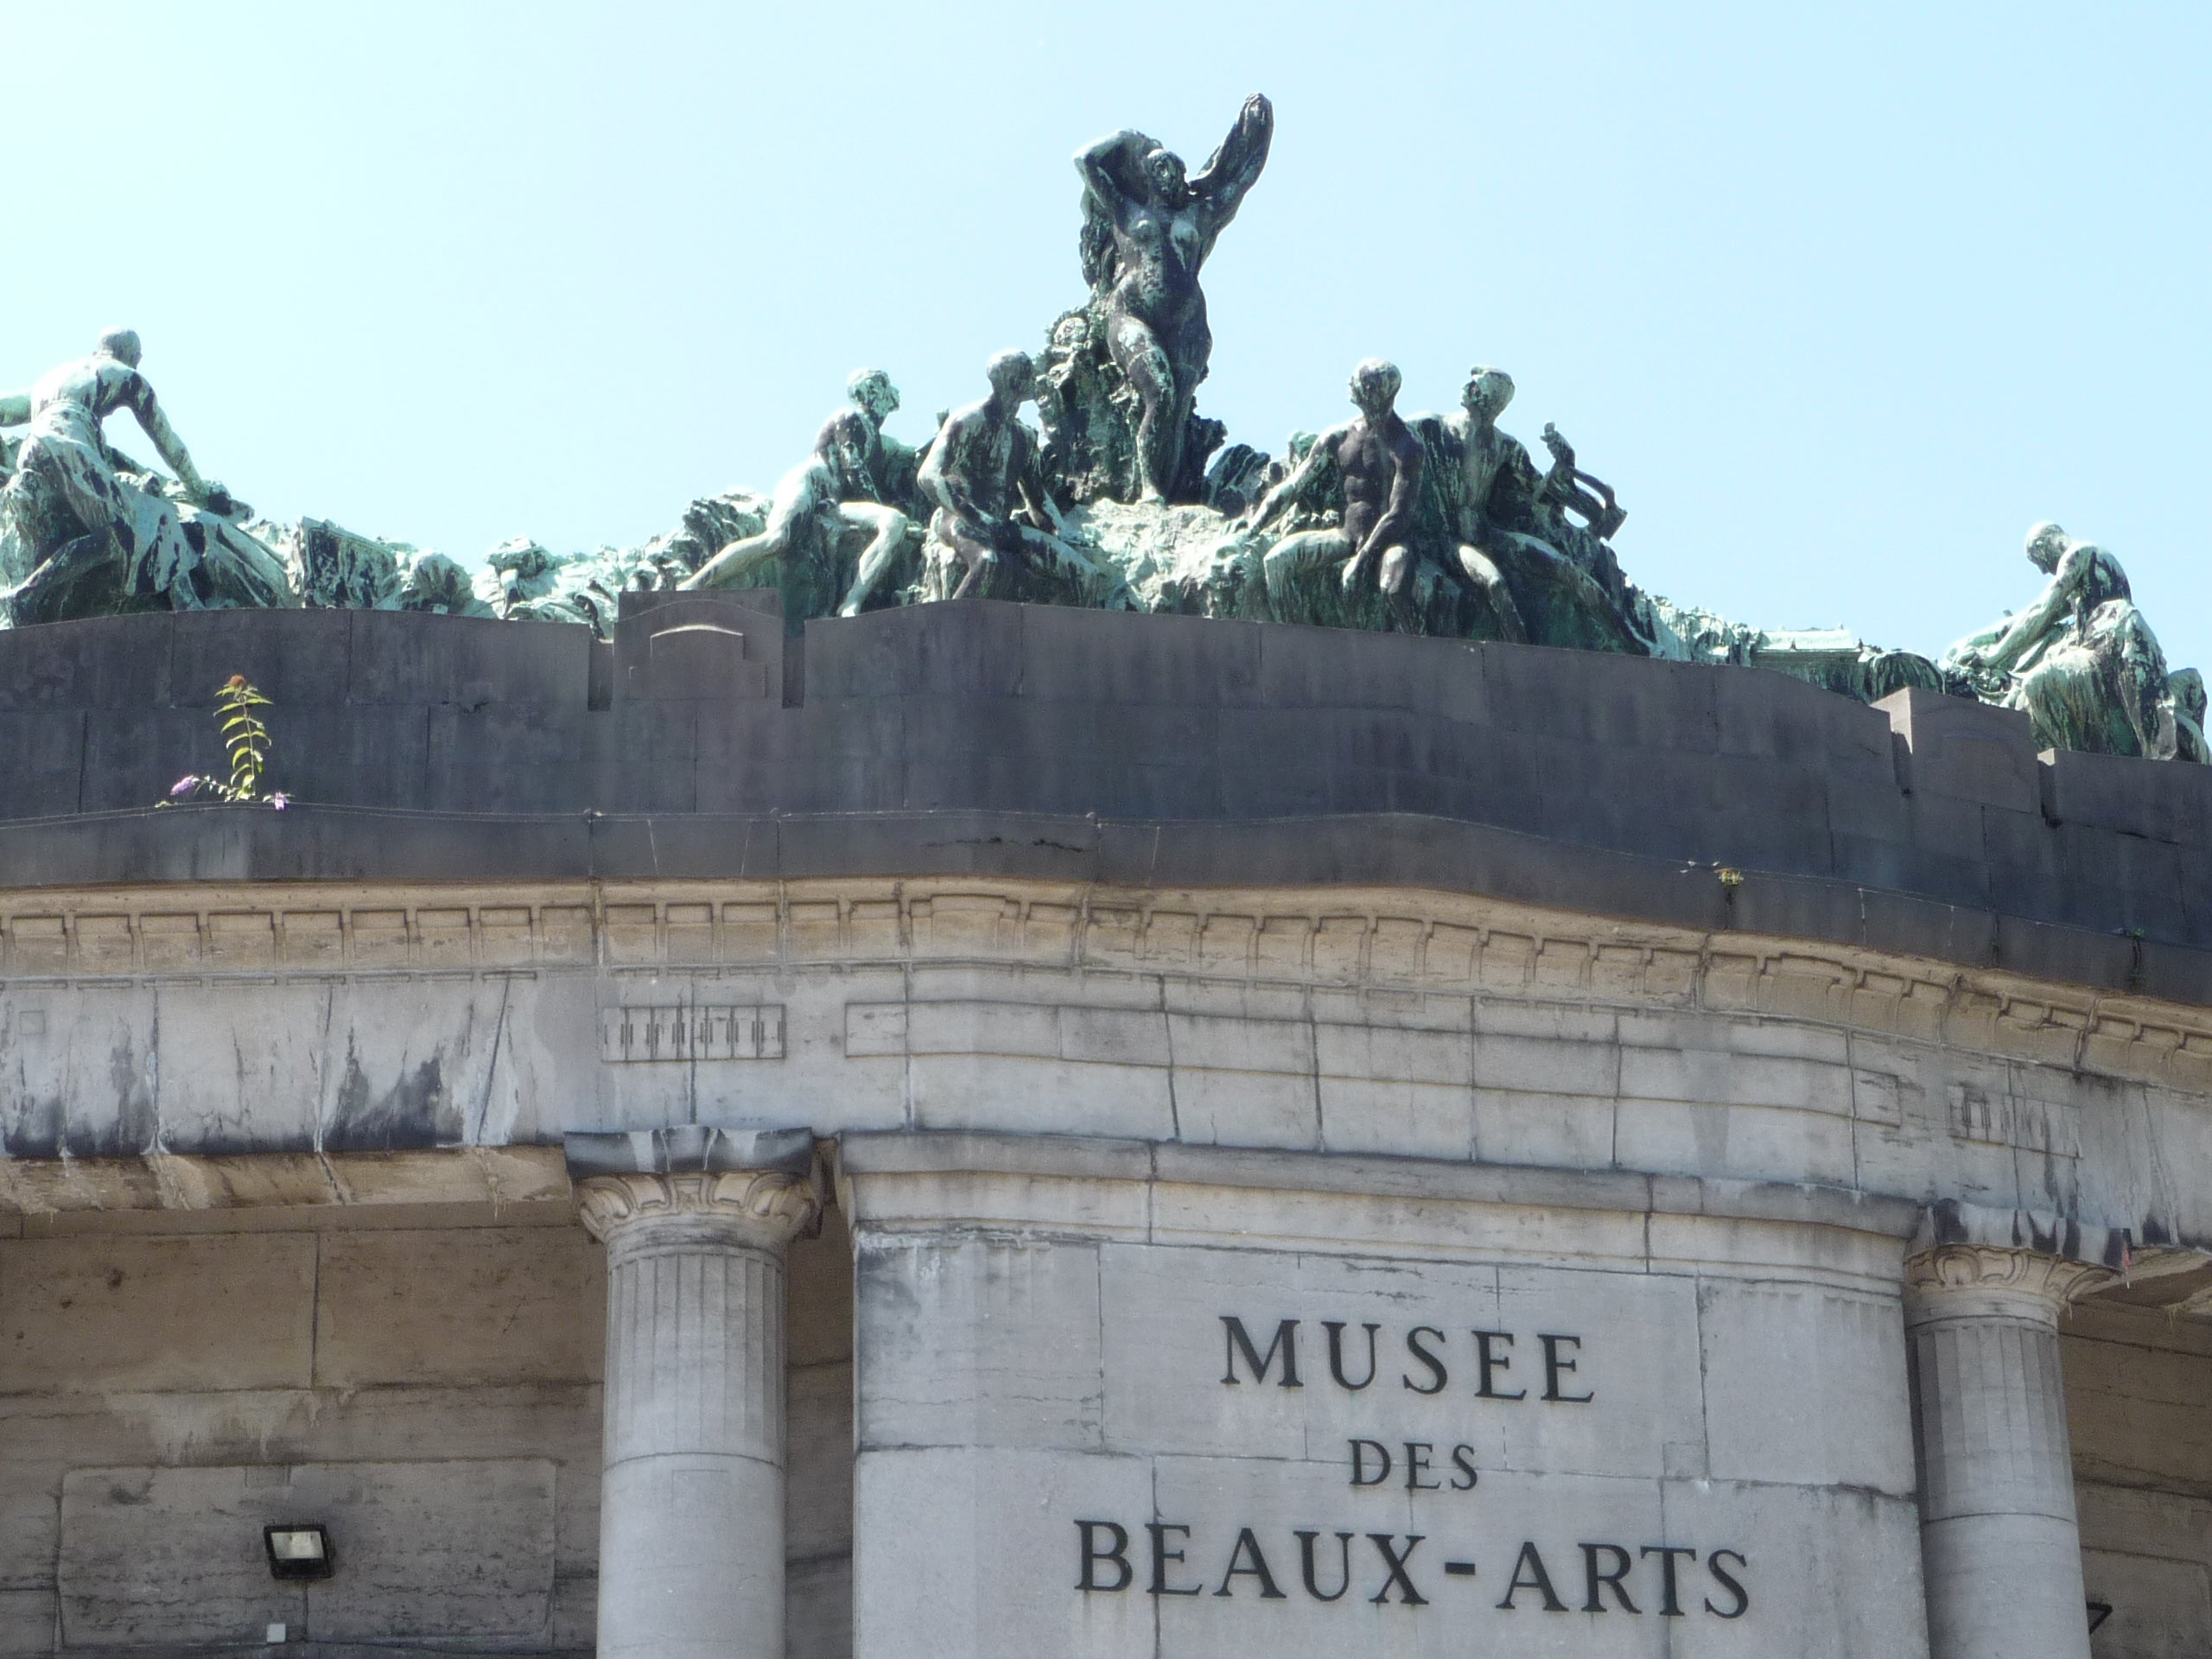 essay on musee des beaux arts Cognetx market access / press releases / wh auden musee des beaux arts poem analysis essays, creative writing worksheets for kg, essay ghostwriter.